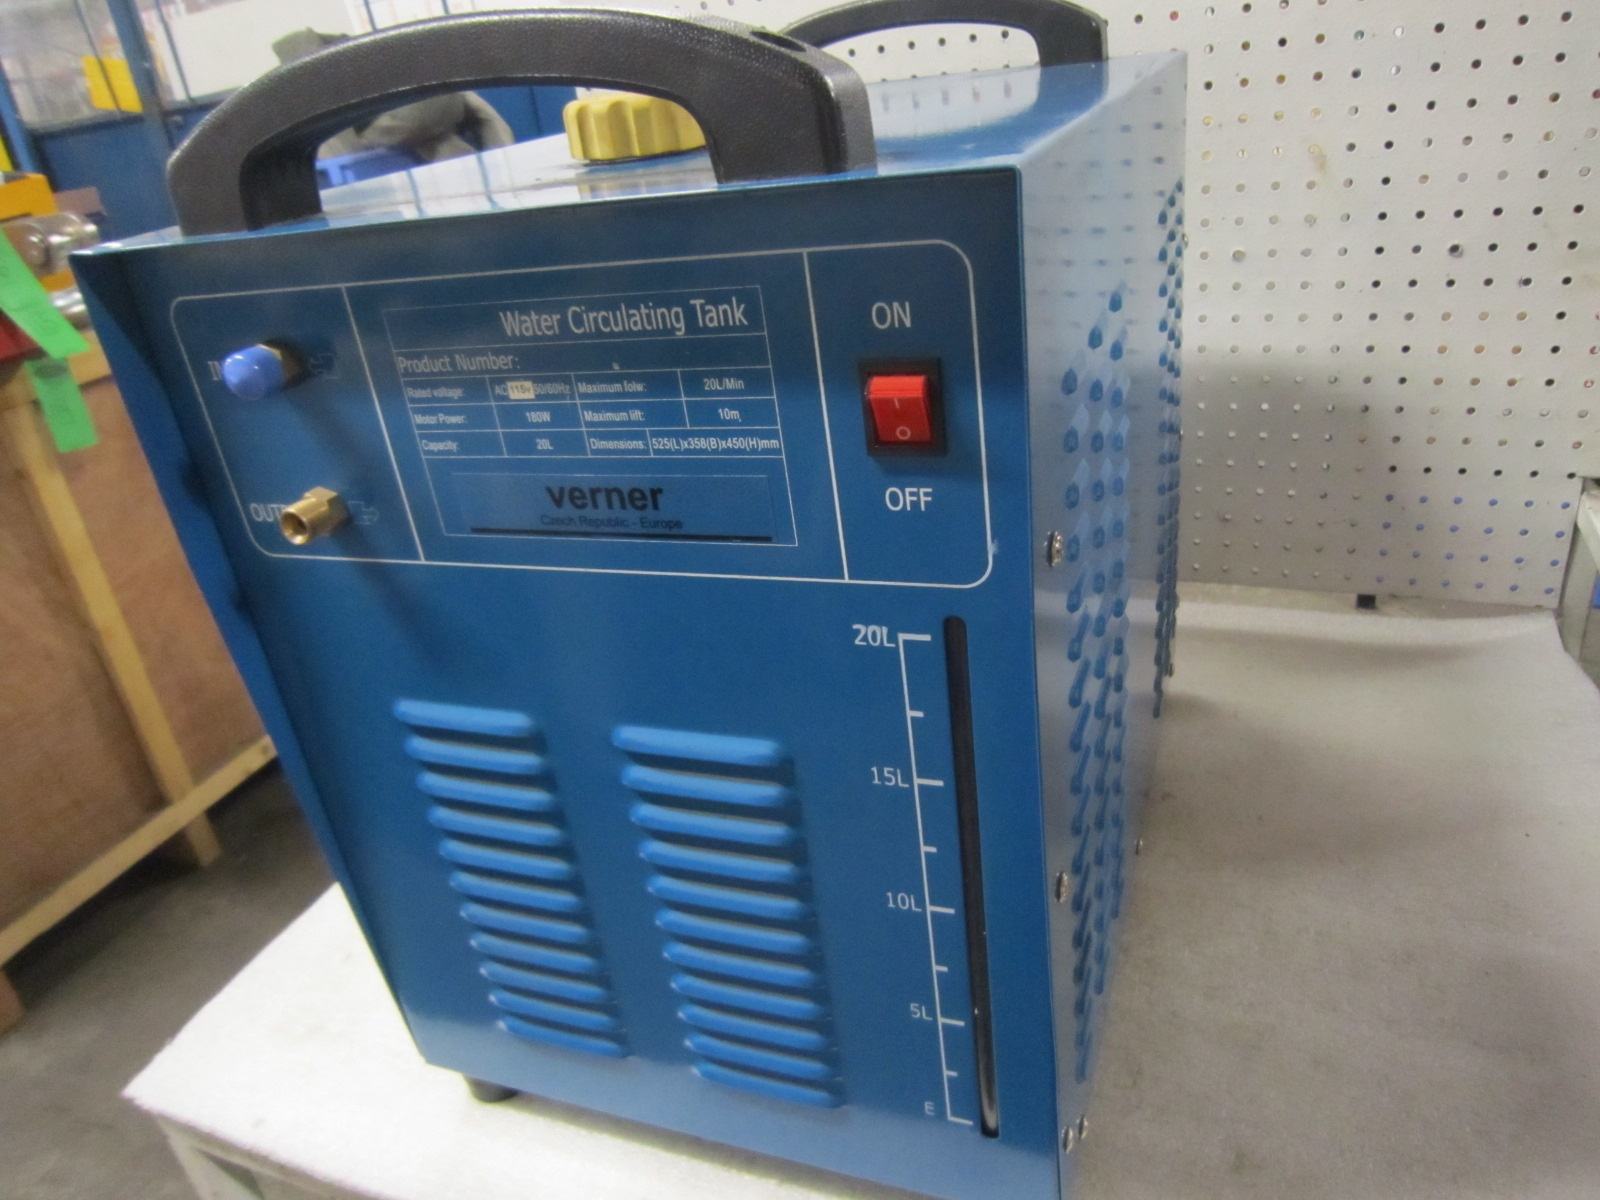 Lot 61 - Verner Water Circulating Tig Welding Water Cooler - 20 Litre Capacity Brand new - 115V Single Phase